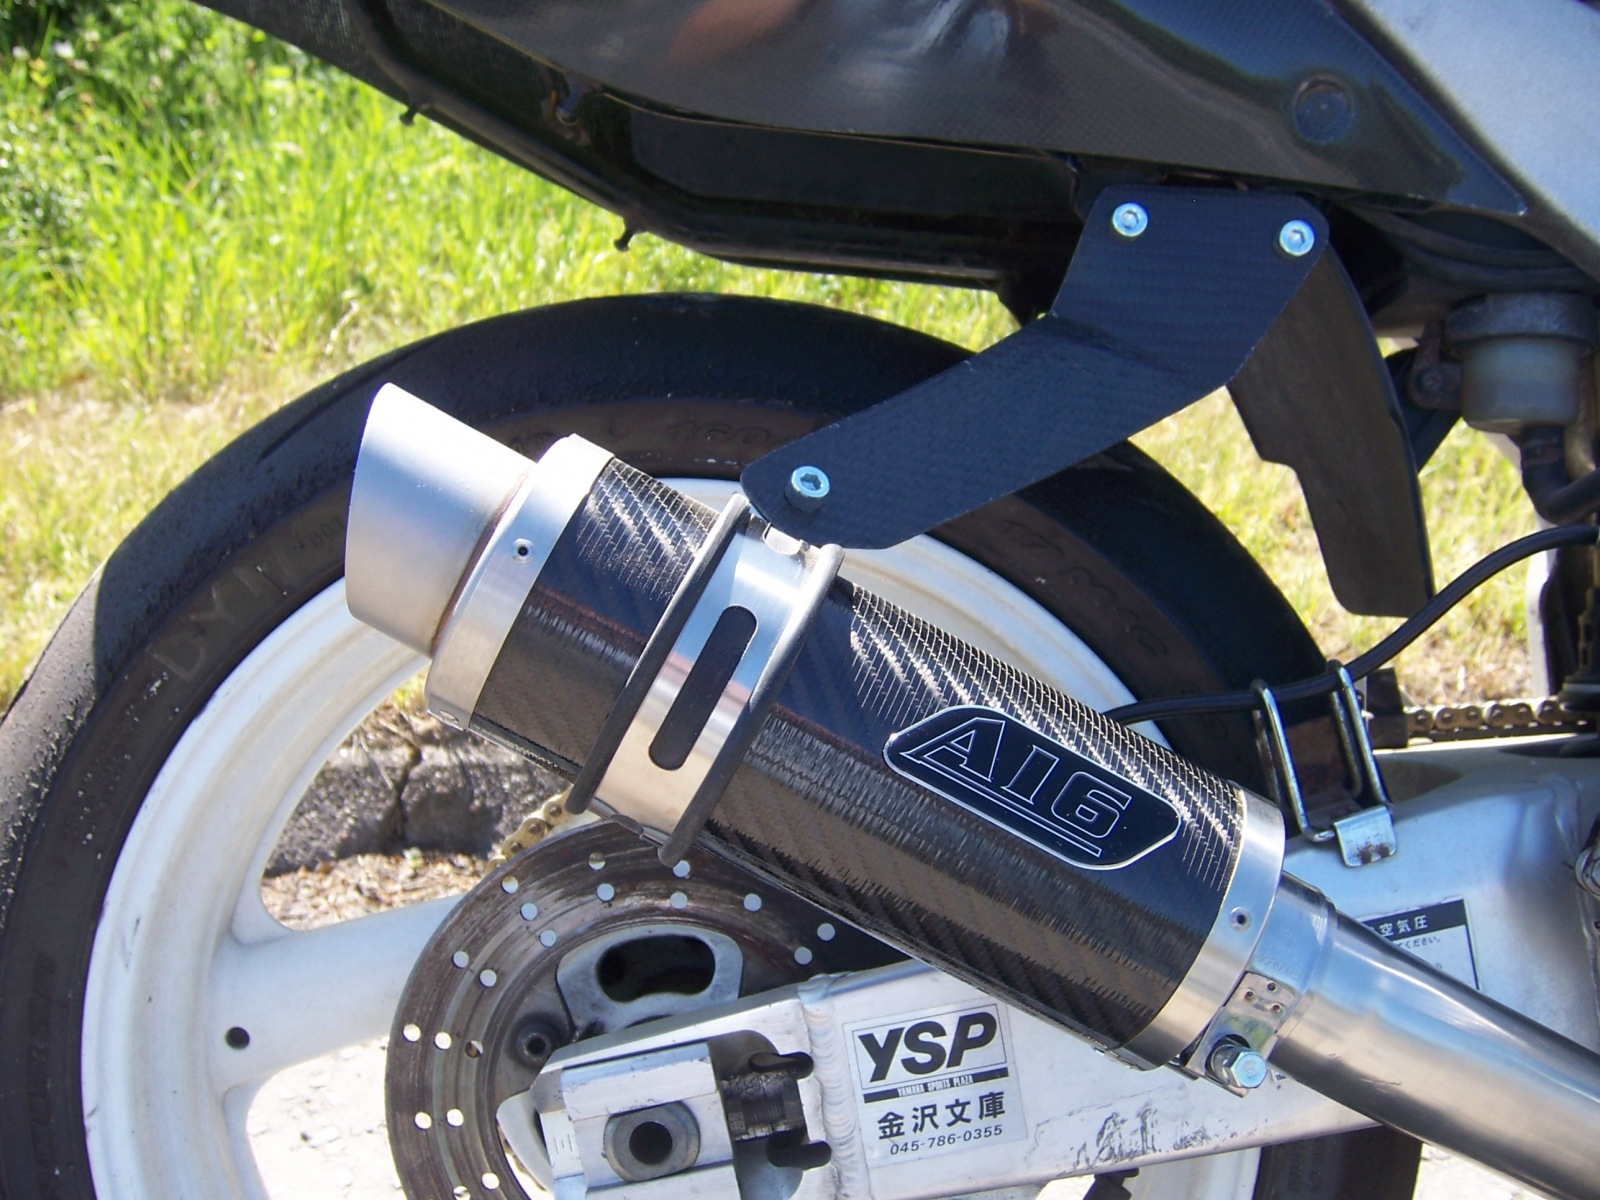 """Yamaha FZR 400<p>A16 Moto GP Carbon Exhaust with Titanium Type Slashcut Outlet</p><br /><br /><a href=""""https://a16roadnracesupplies.co.uk/product/a16-yamaha-exhausts/"""">Buy now!</a>"""